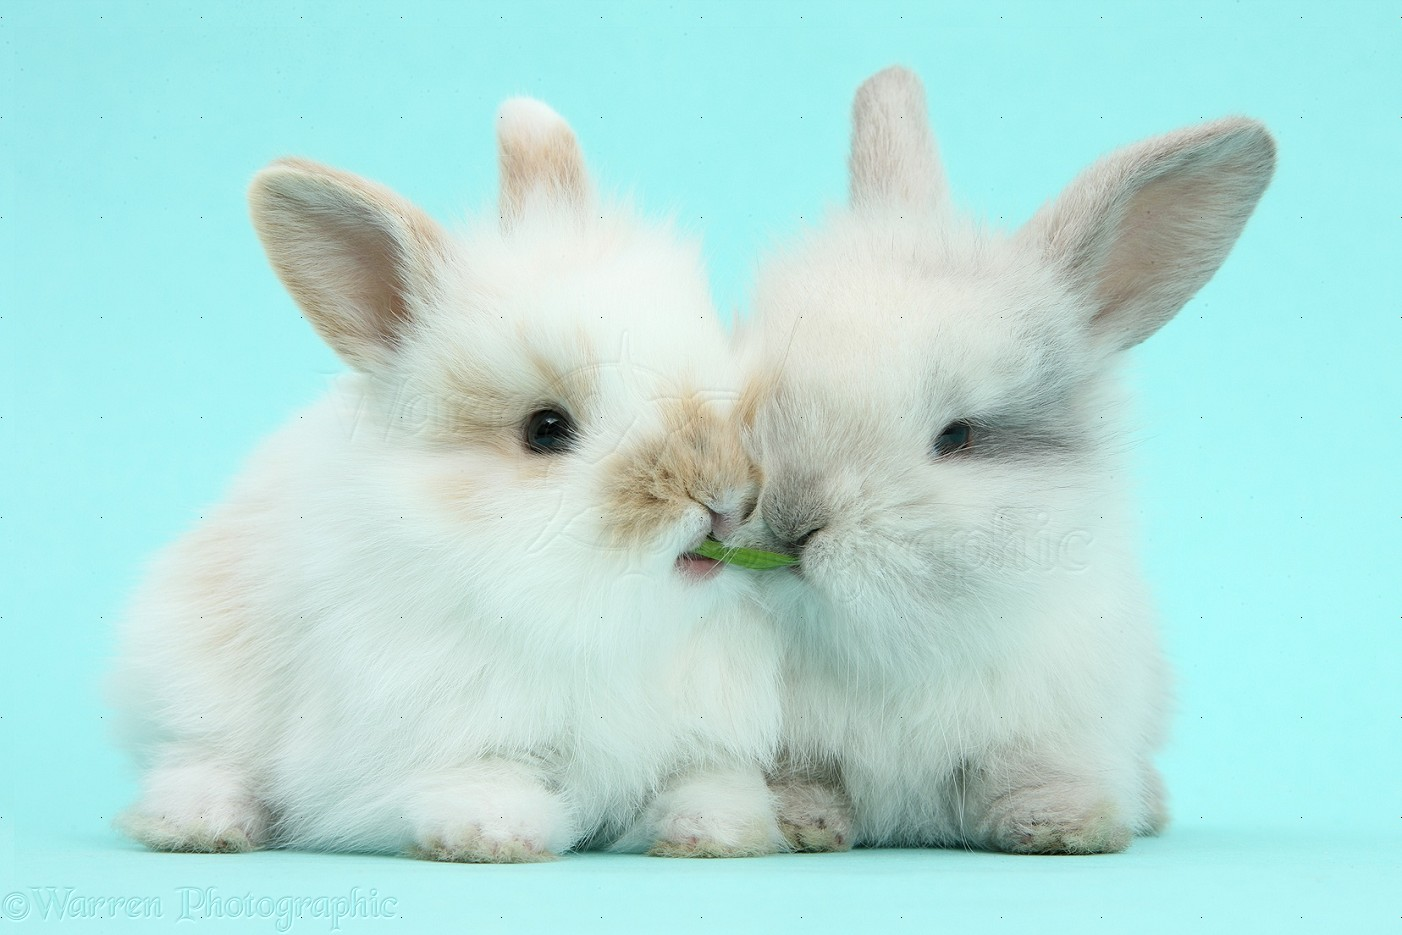 cute baby bunnies on blue background photo wp40457